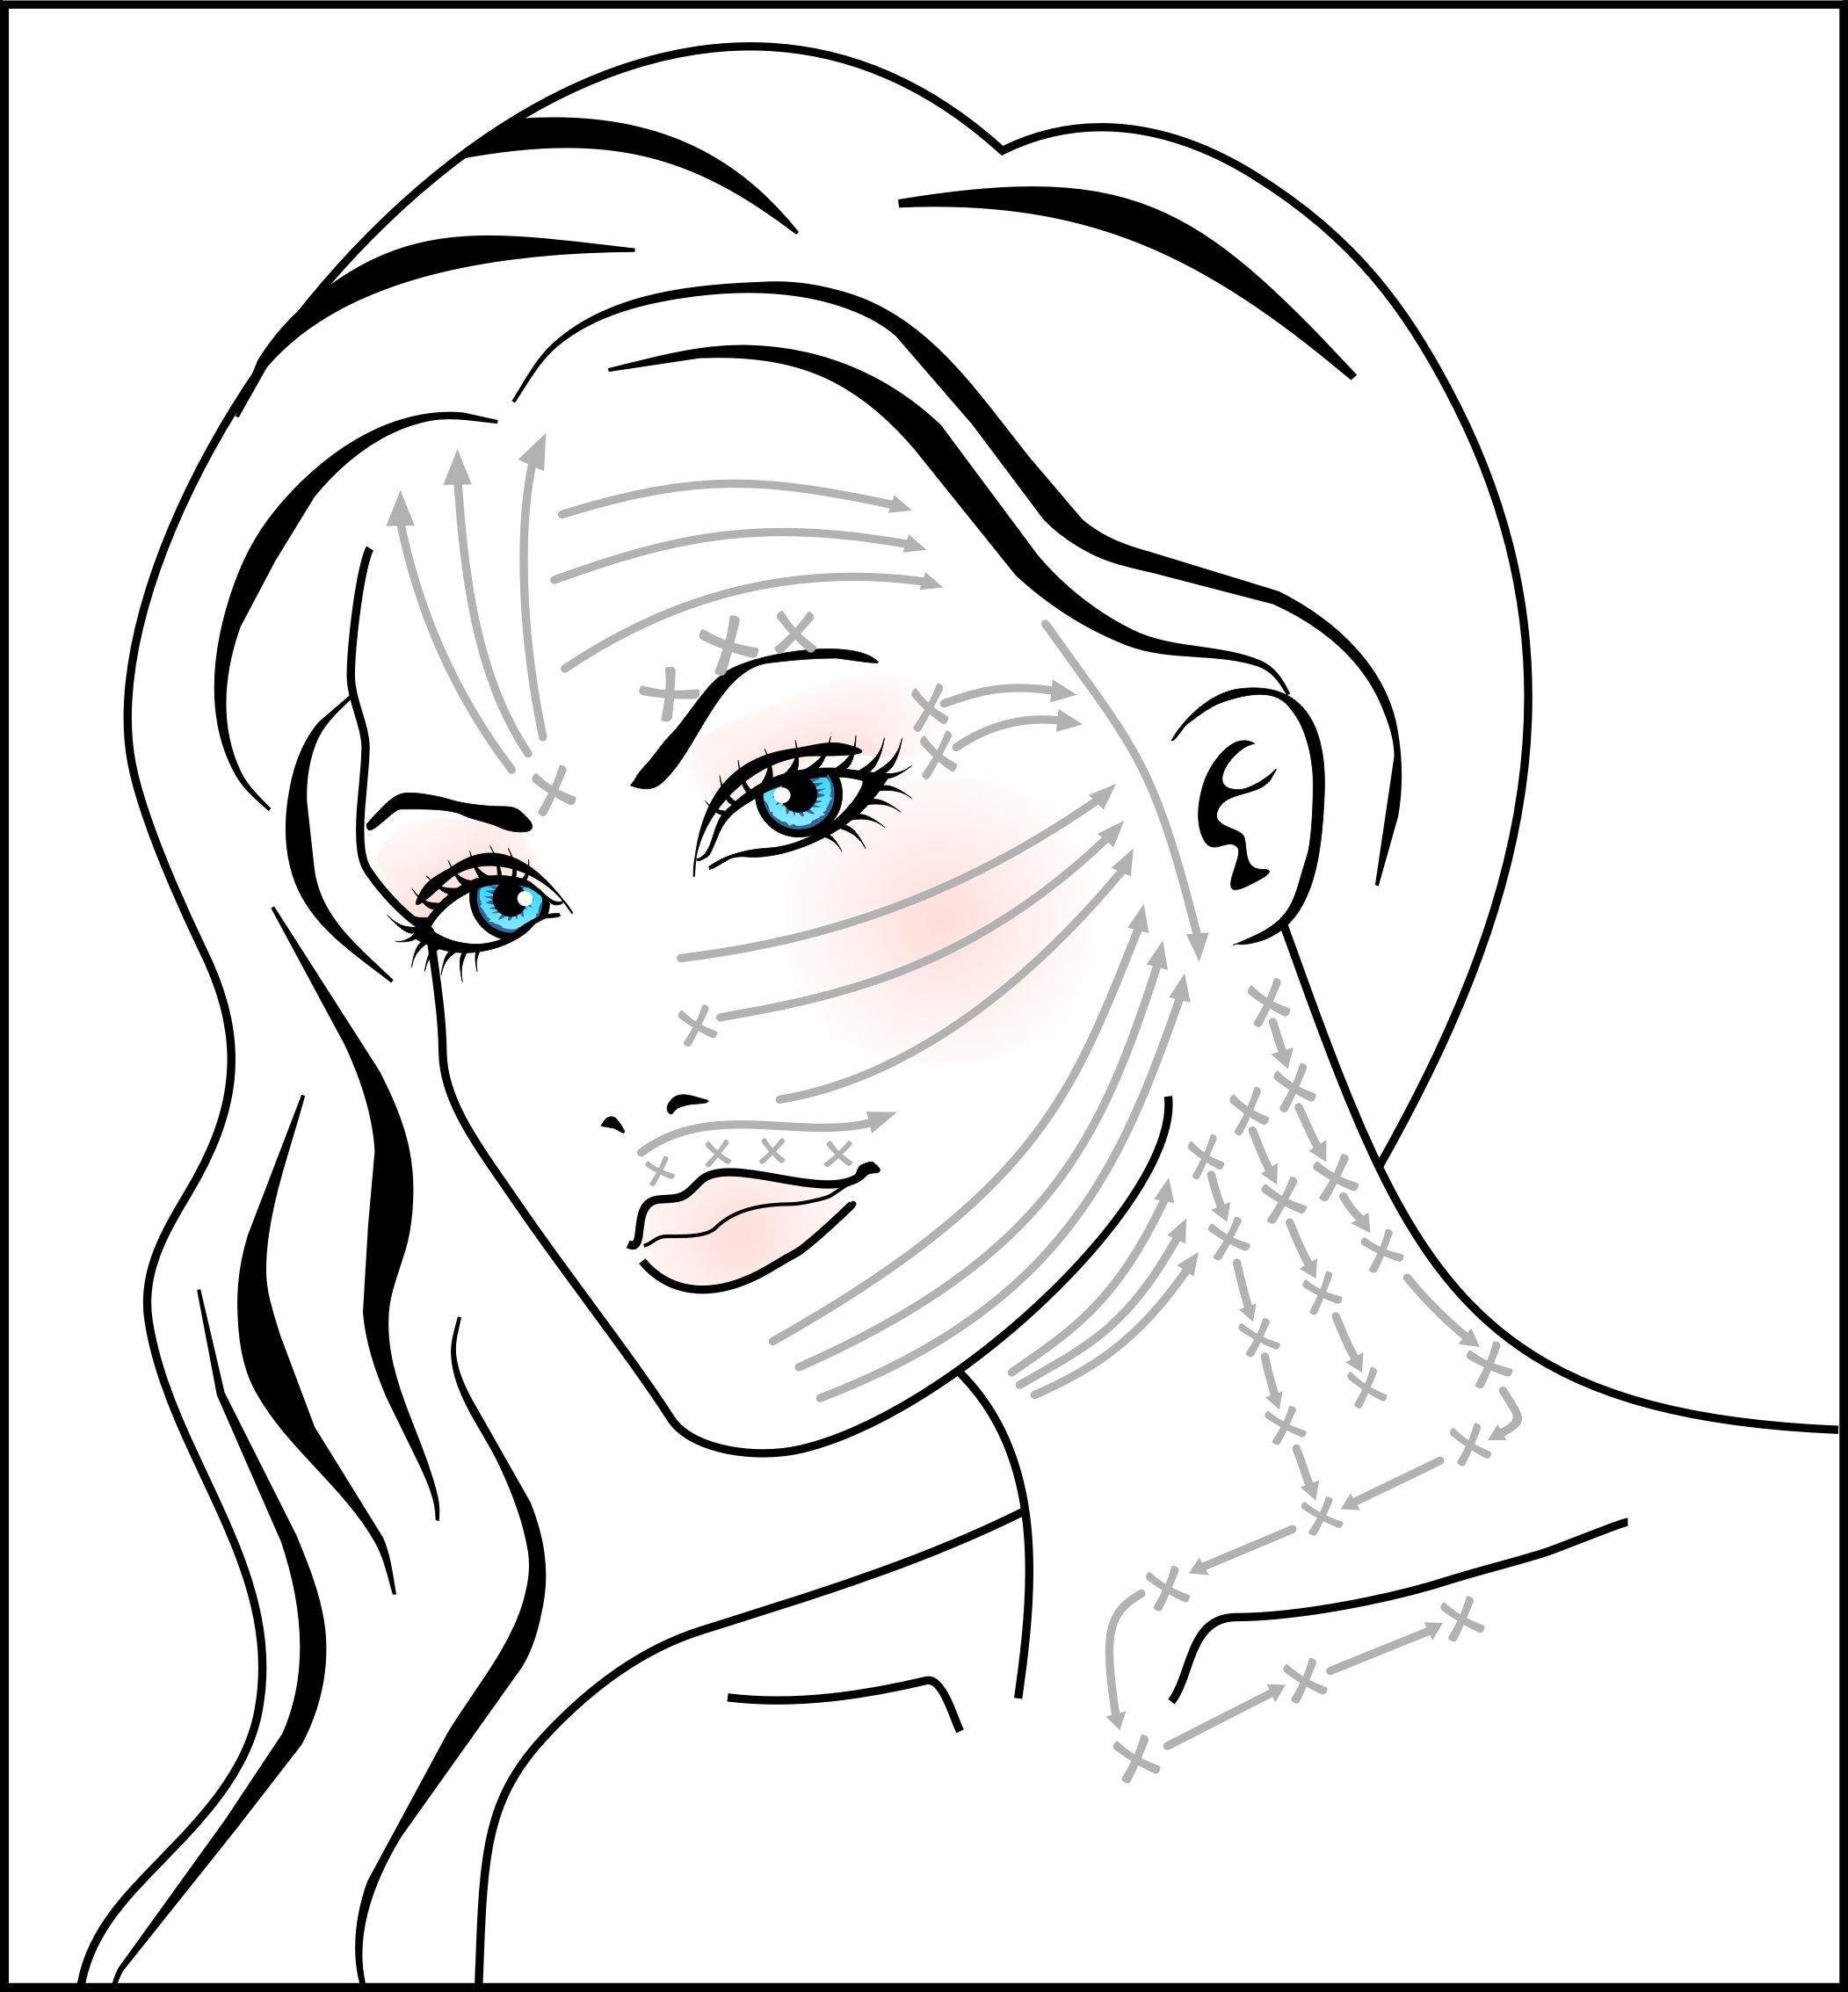 massage technique diagram p bass body dimensions on how to do the mira dynamic anti aging facial